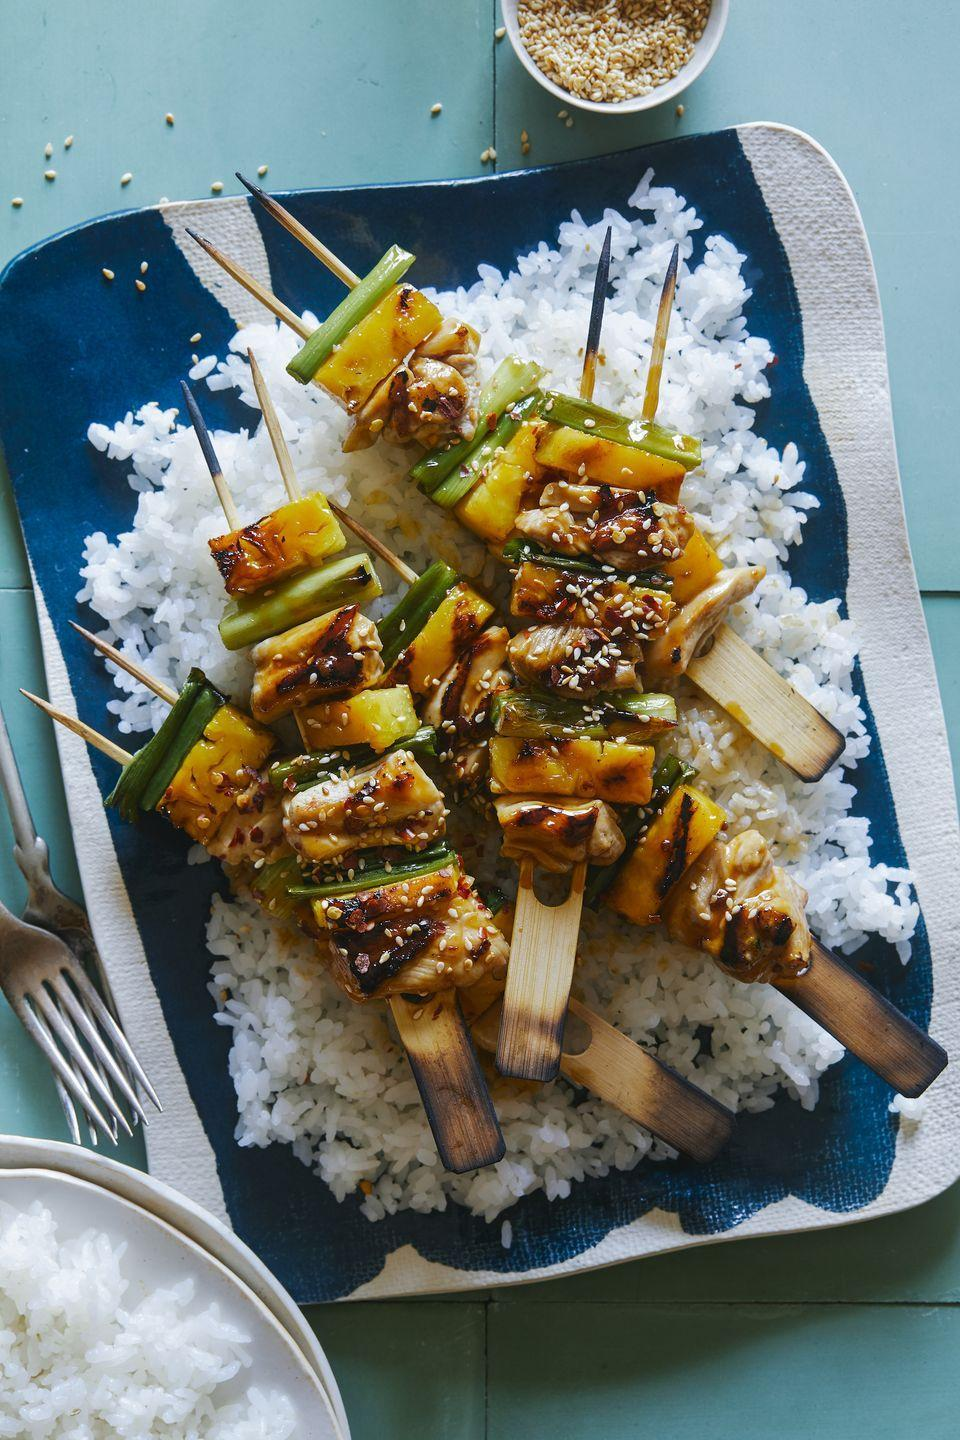 """<p>Yakety yak!</p><p>Get the recipe from <a href=""""https://www.delish.com/cooking/recipe-ideas/recipes/a53974/teriyaki-chicken-and-pineapple-yakitori-recipe/"""" rel=""""nofollow noopener"""" target=""""_blank"""" data-ylk=""""slk:Delish"""" class=""""link rapid-noclick-resp"""">Delish</a>. </p>"""